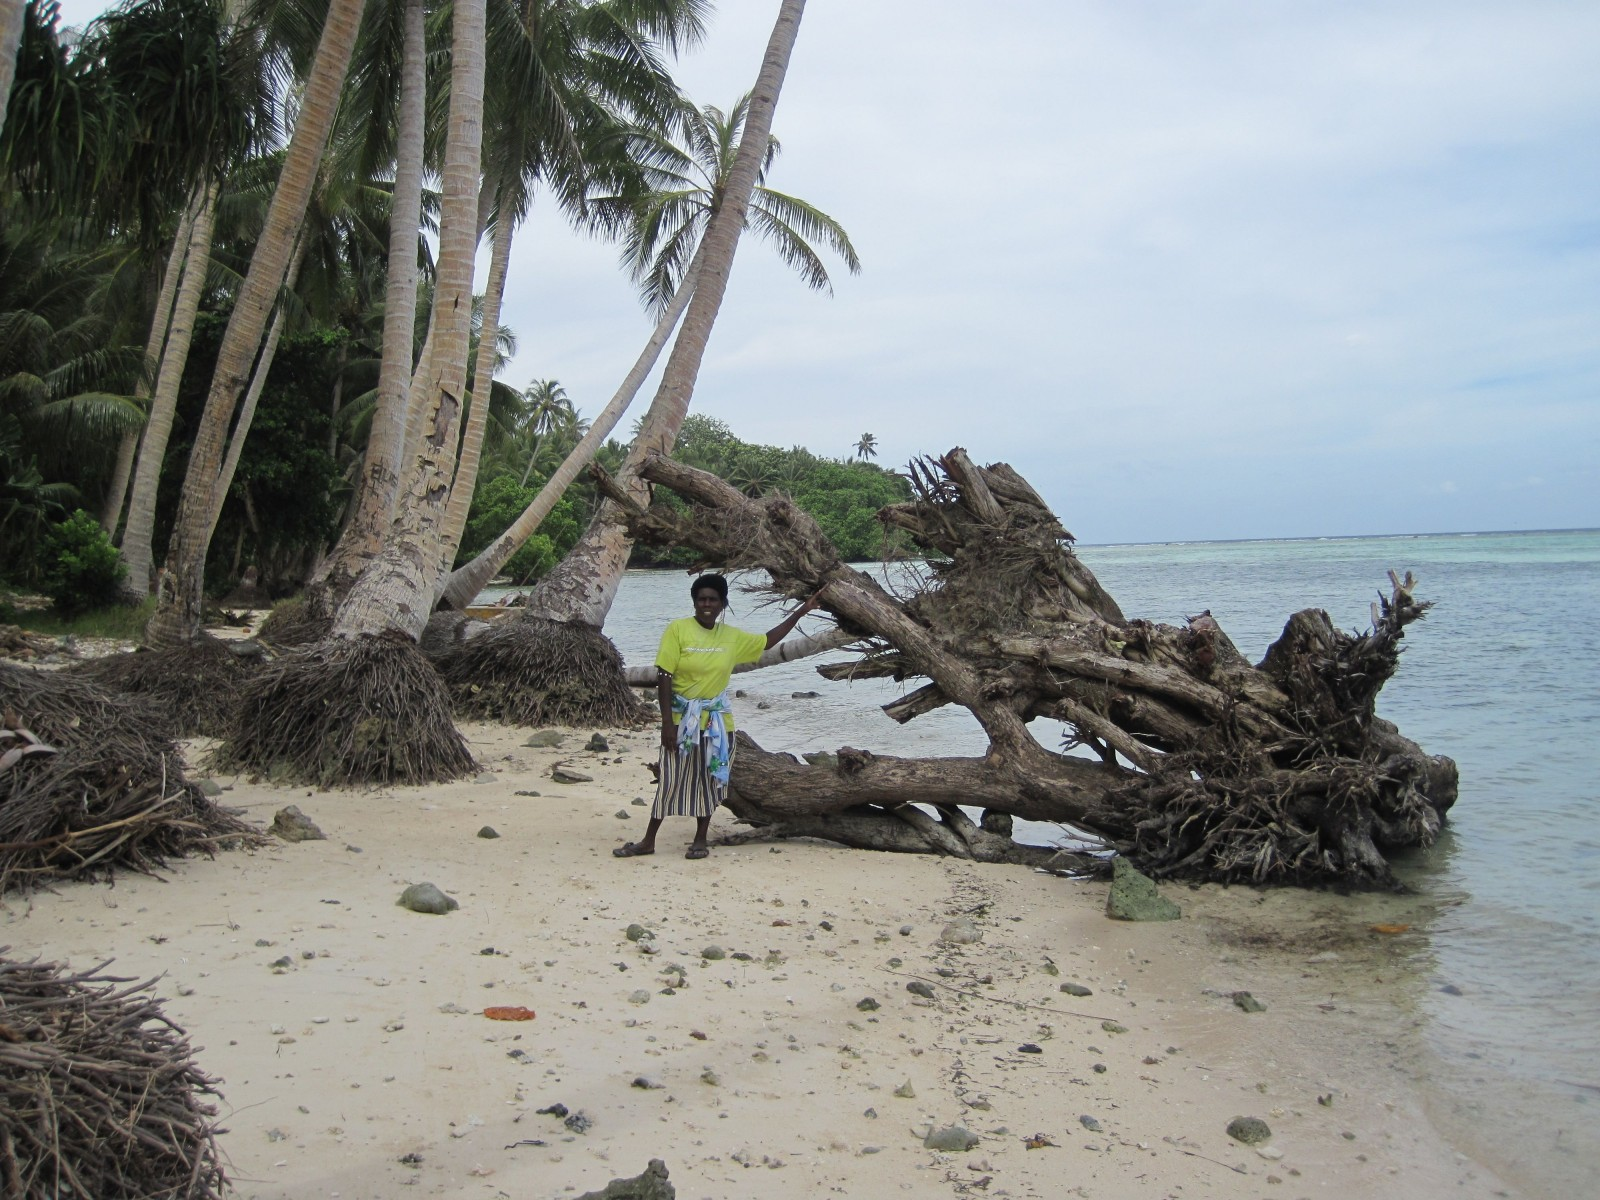 Tree roots are exposed as the beach is increasingly eroded